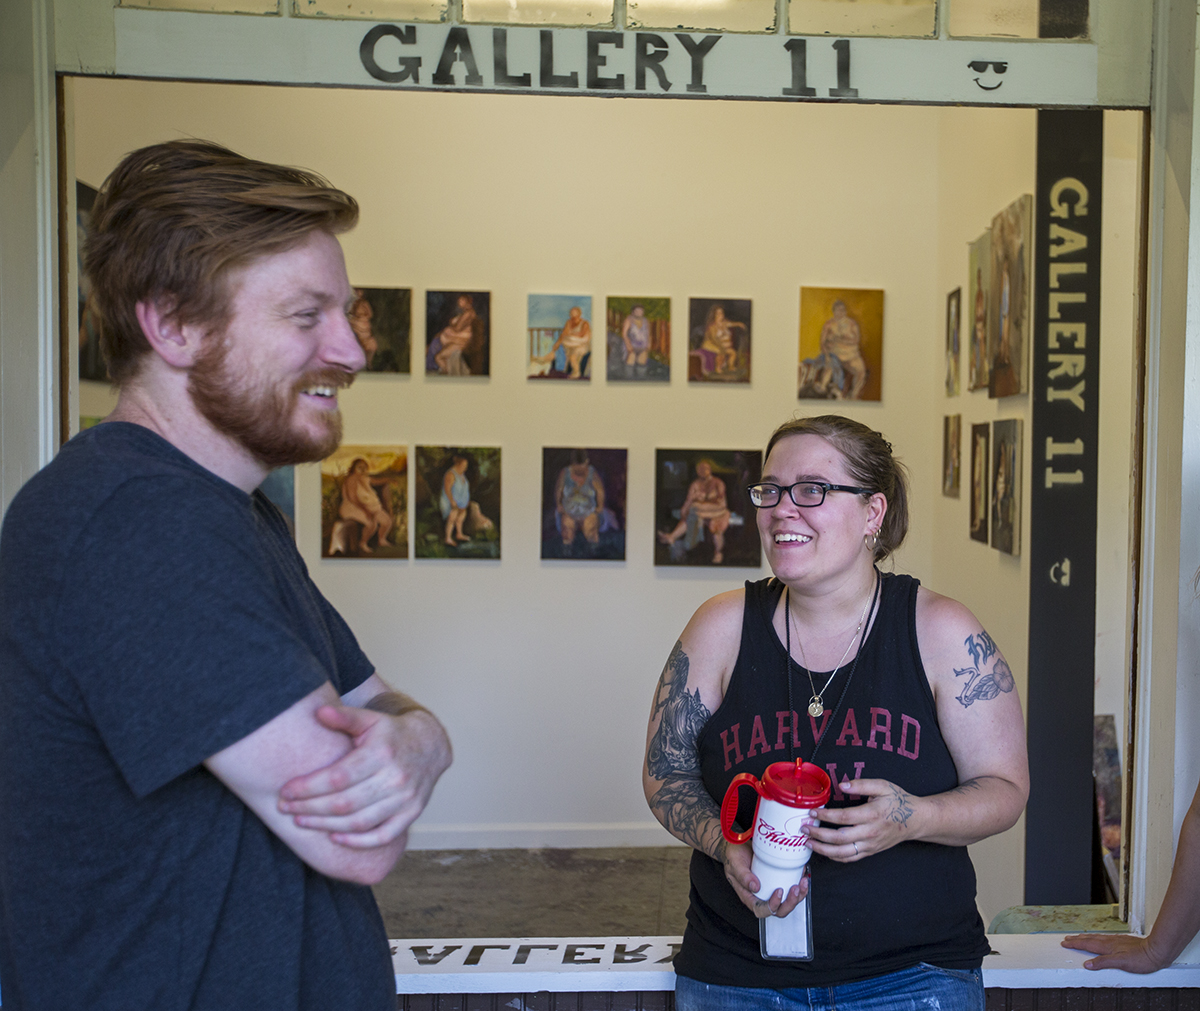 School of Art students David Dupak and Sarah Jarrett chat in front of Gallery 11 where some of their paintings are displayed Monday, July 11, 2016, at the School of Art.